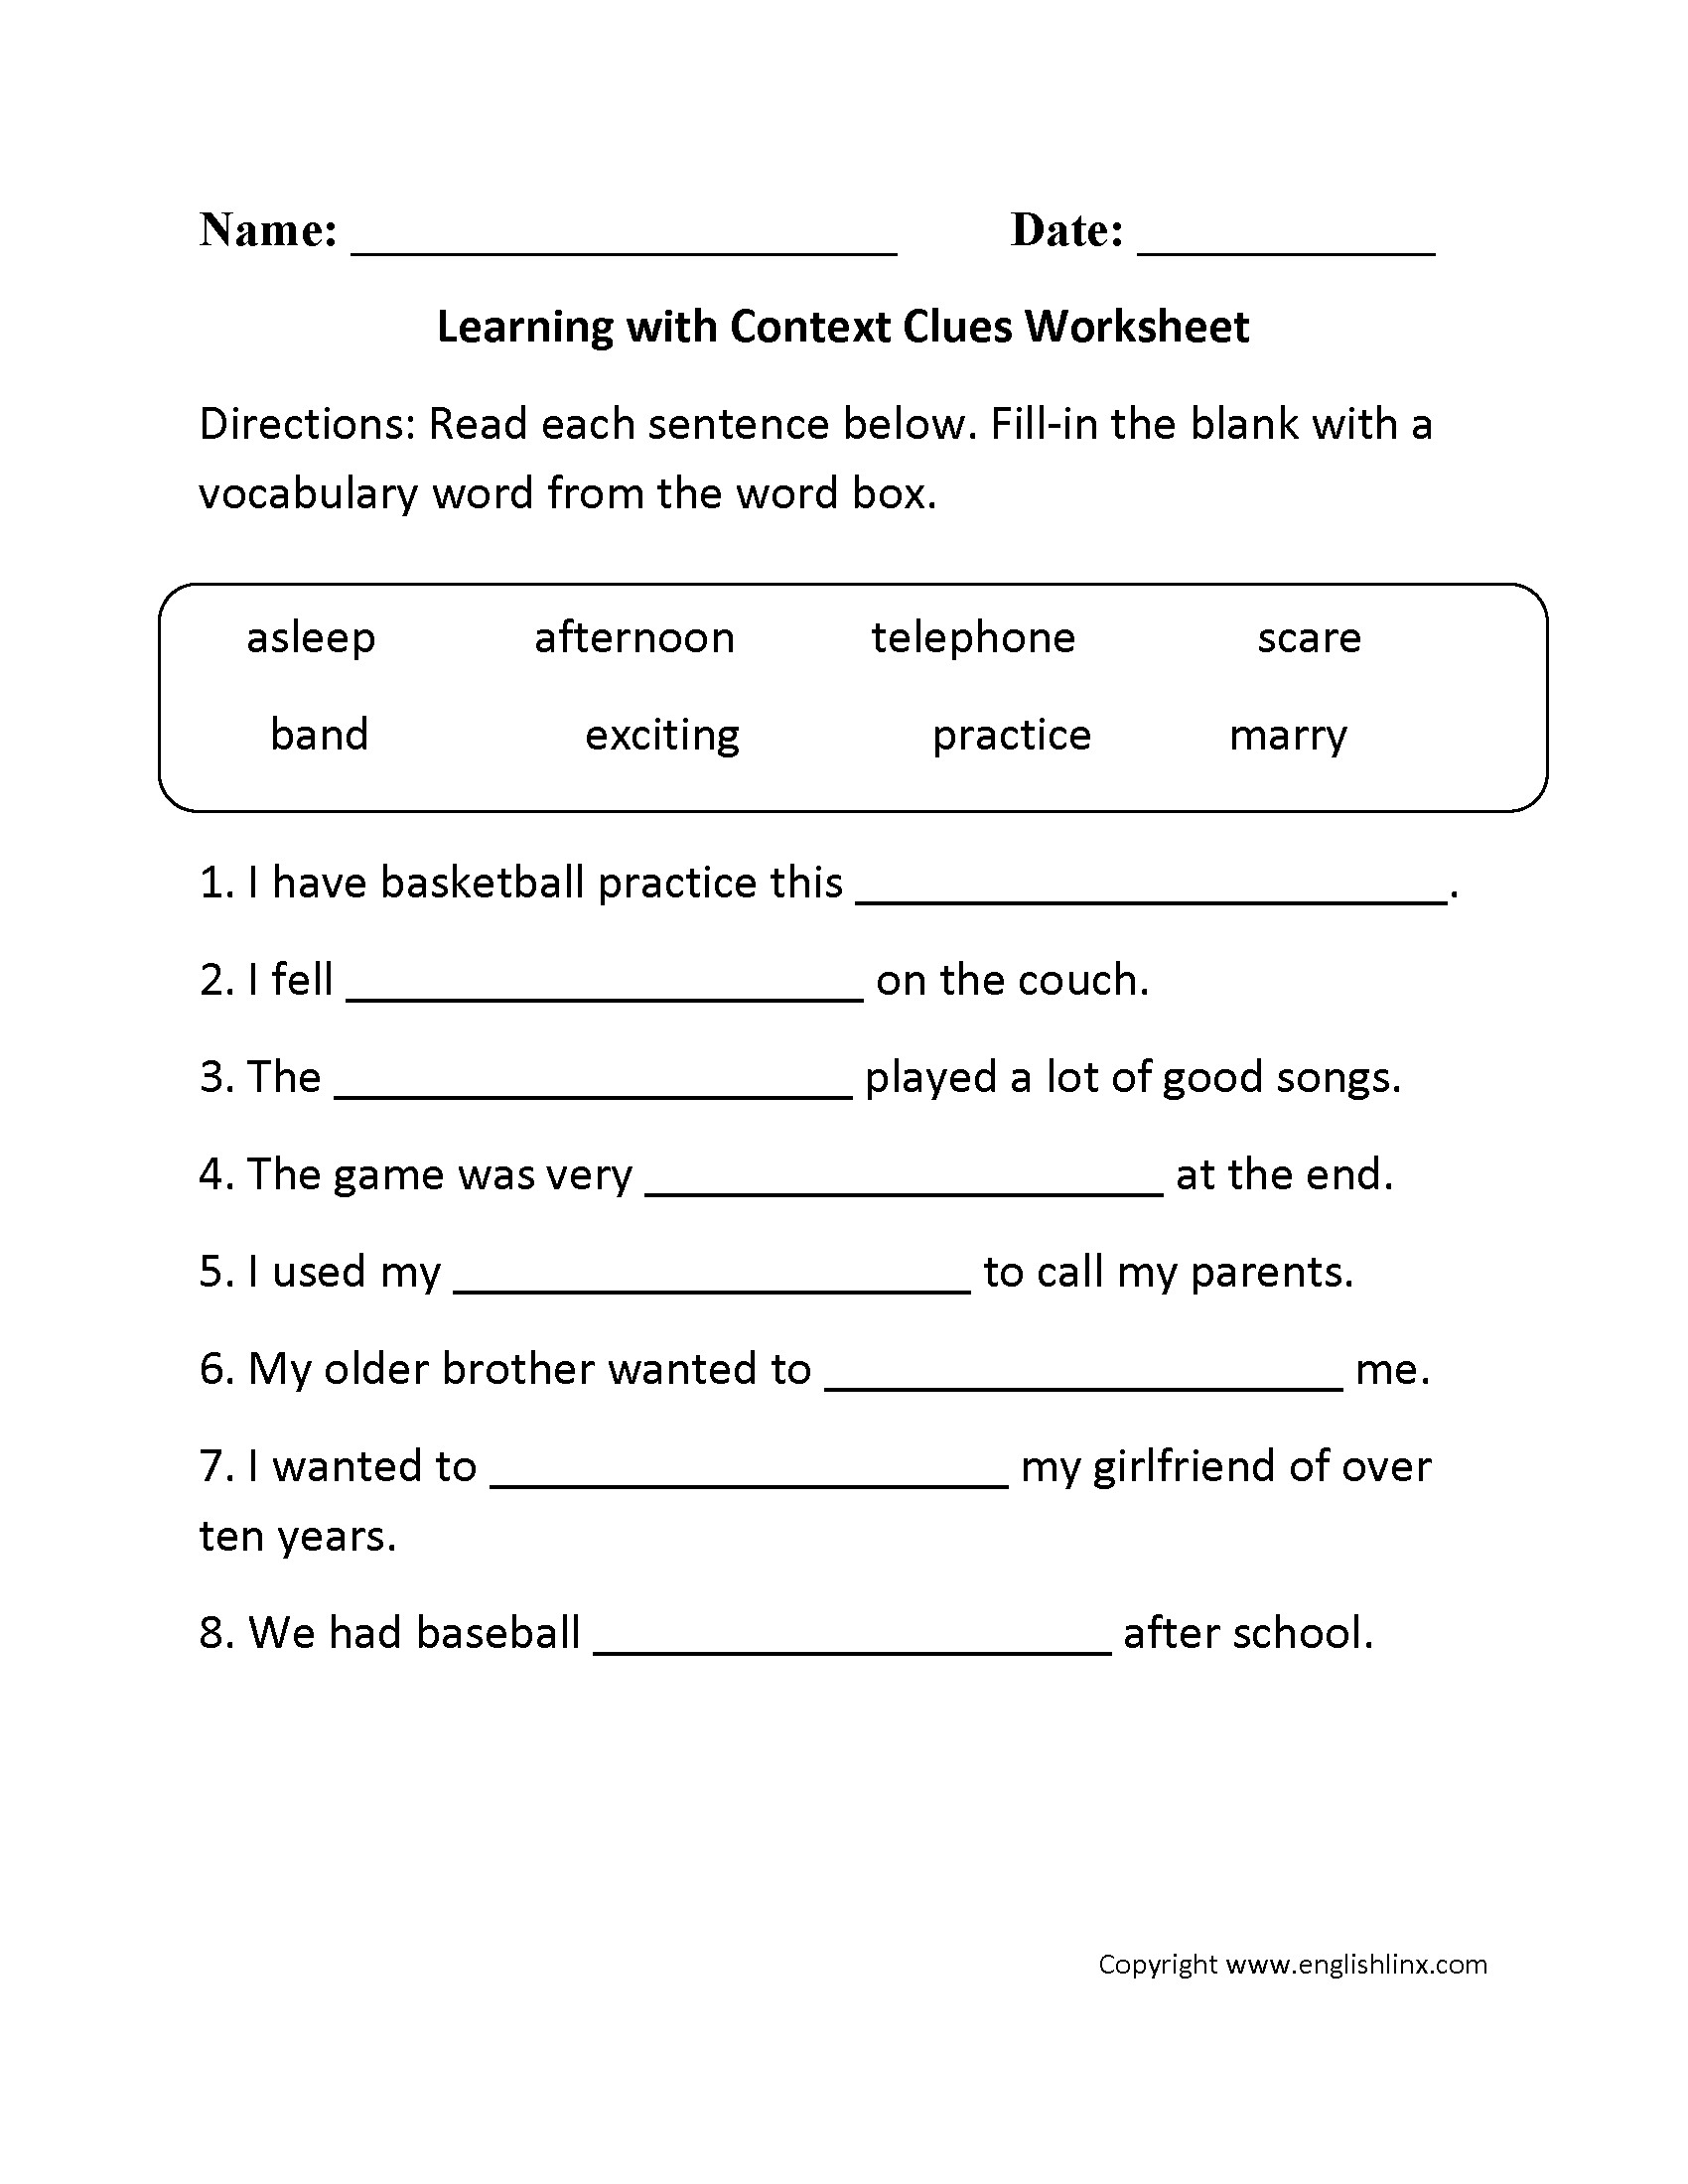 Context Clues Worksheets 3rd Grade Ereading Worksheet Context Clues